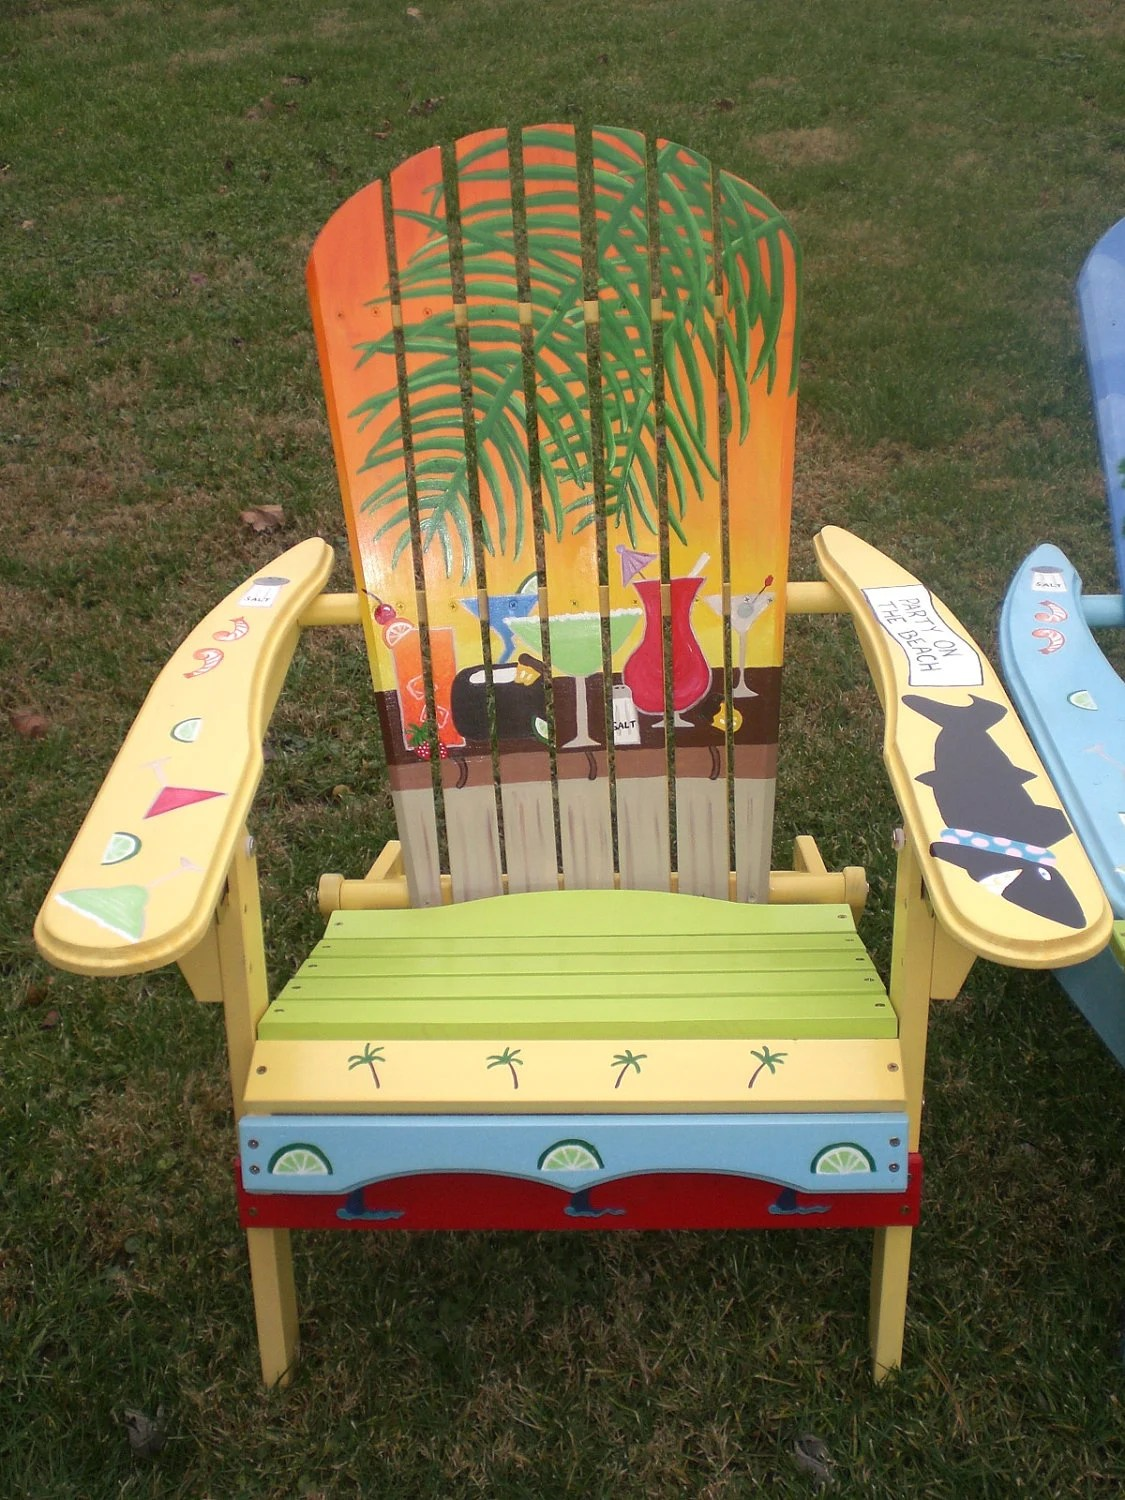 painted adirondack chairs pregnancy beach chair hand yellow orange sunset with